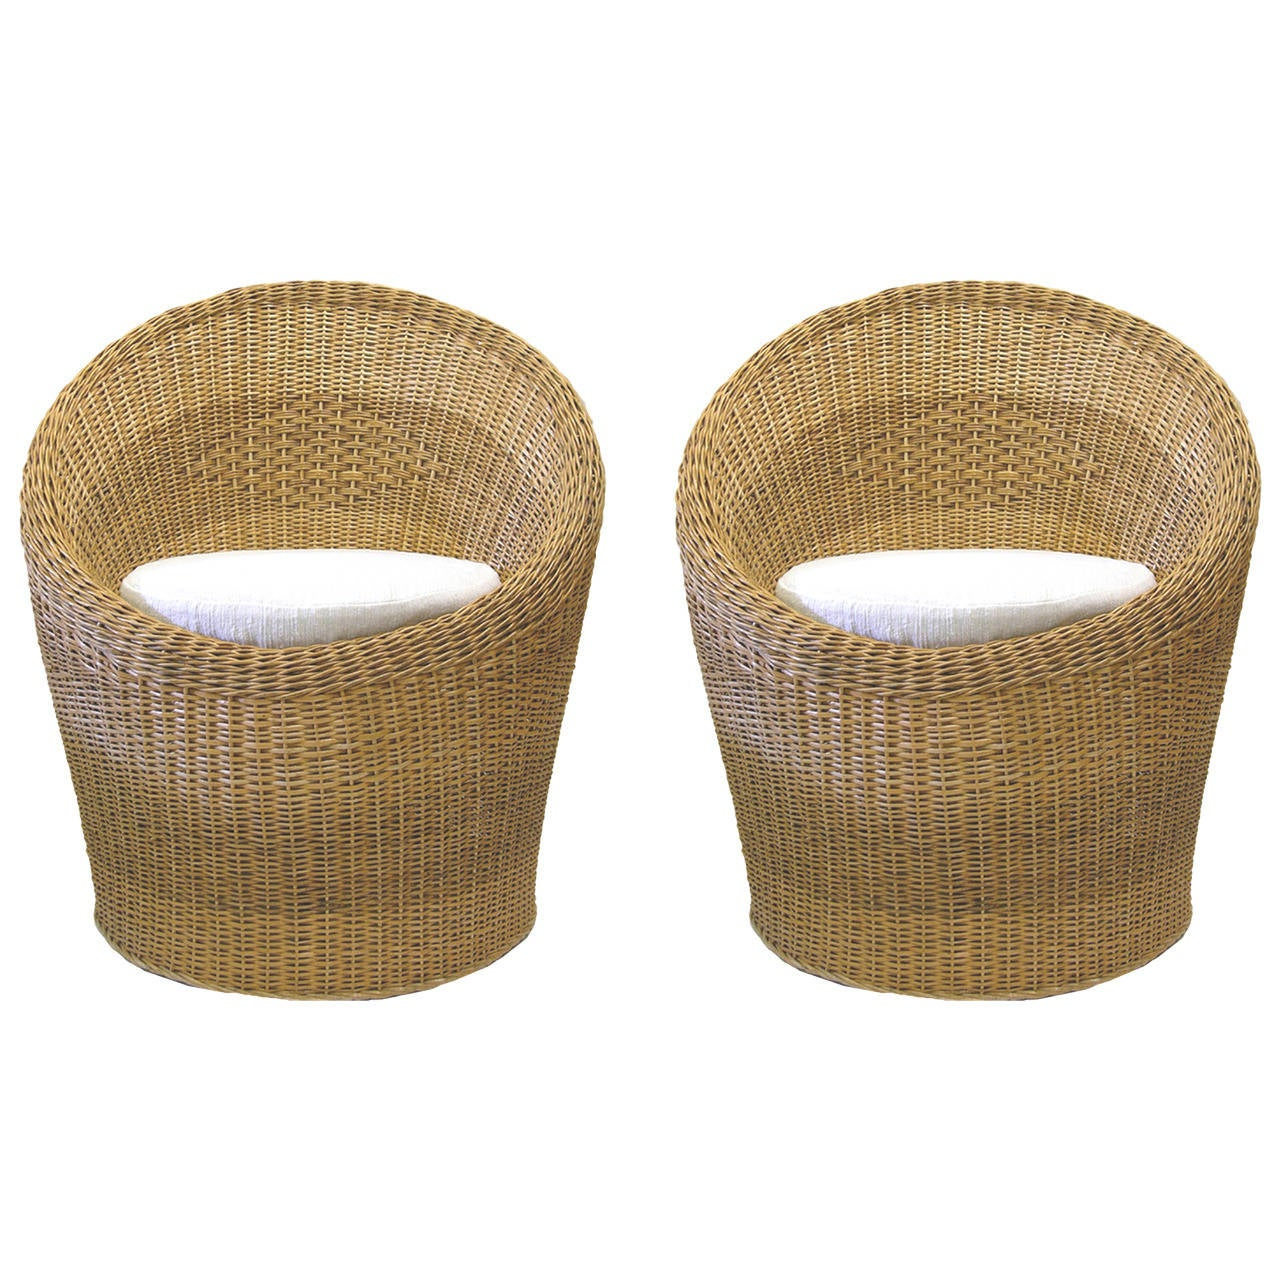 Pod Chairs Pair Of Woven Wicker Pod Chairs With Haitian Cotton Seat